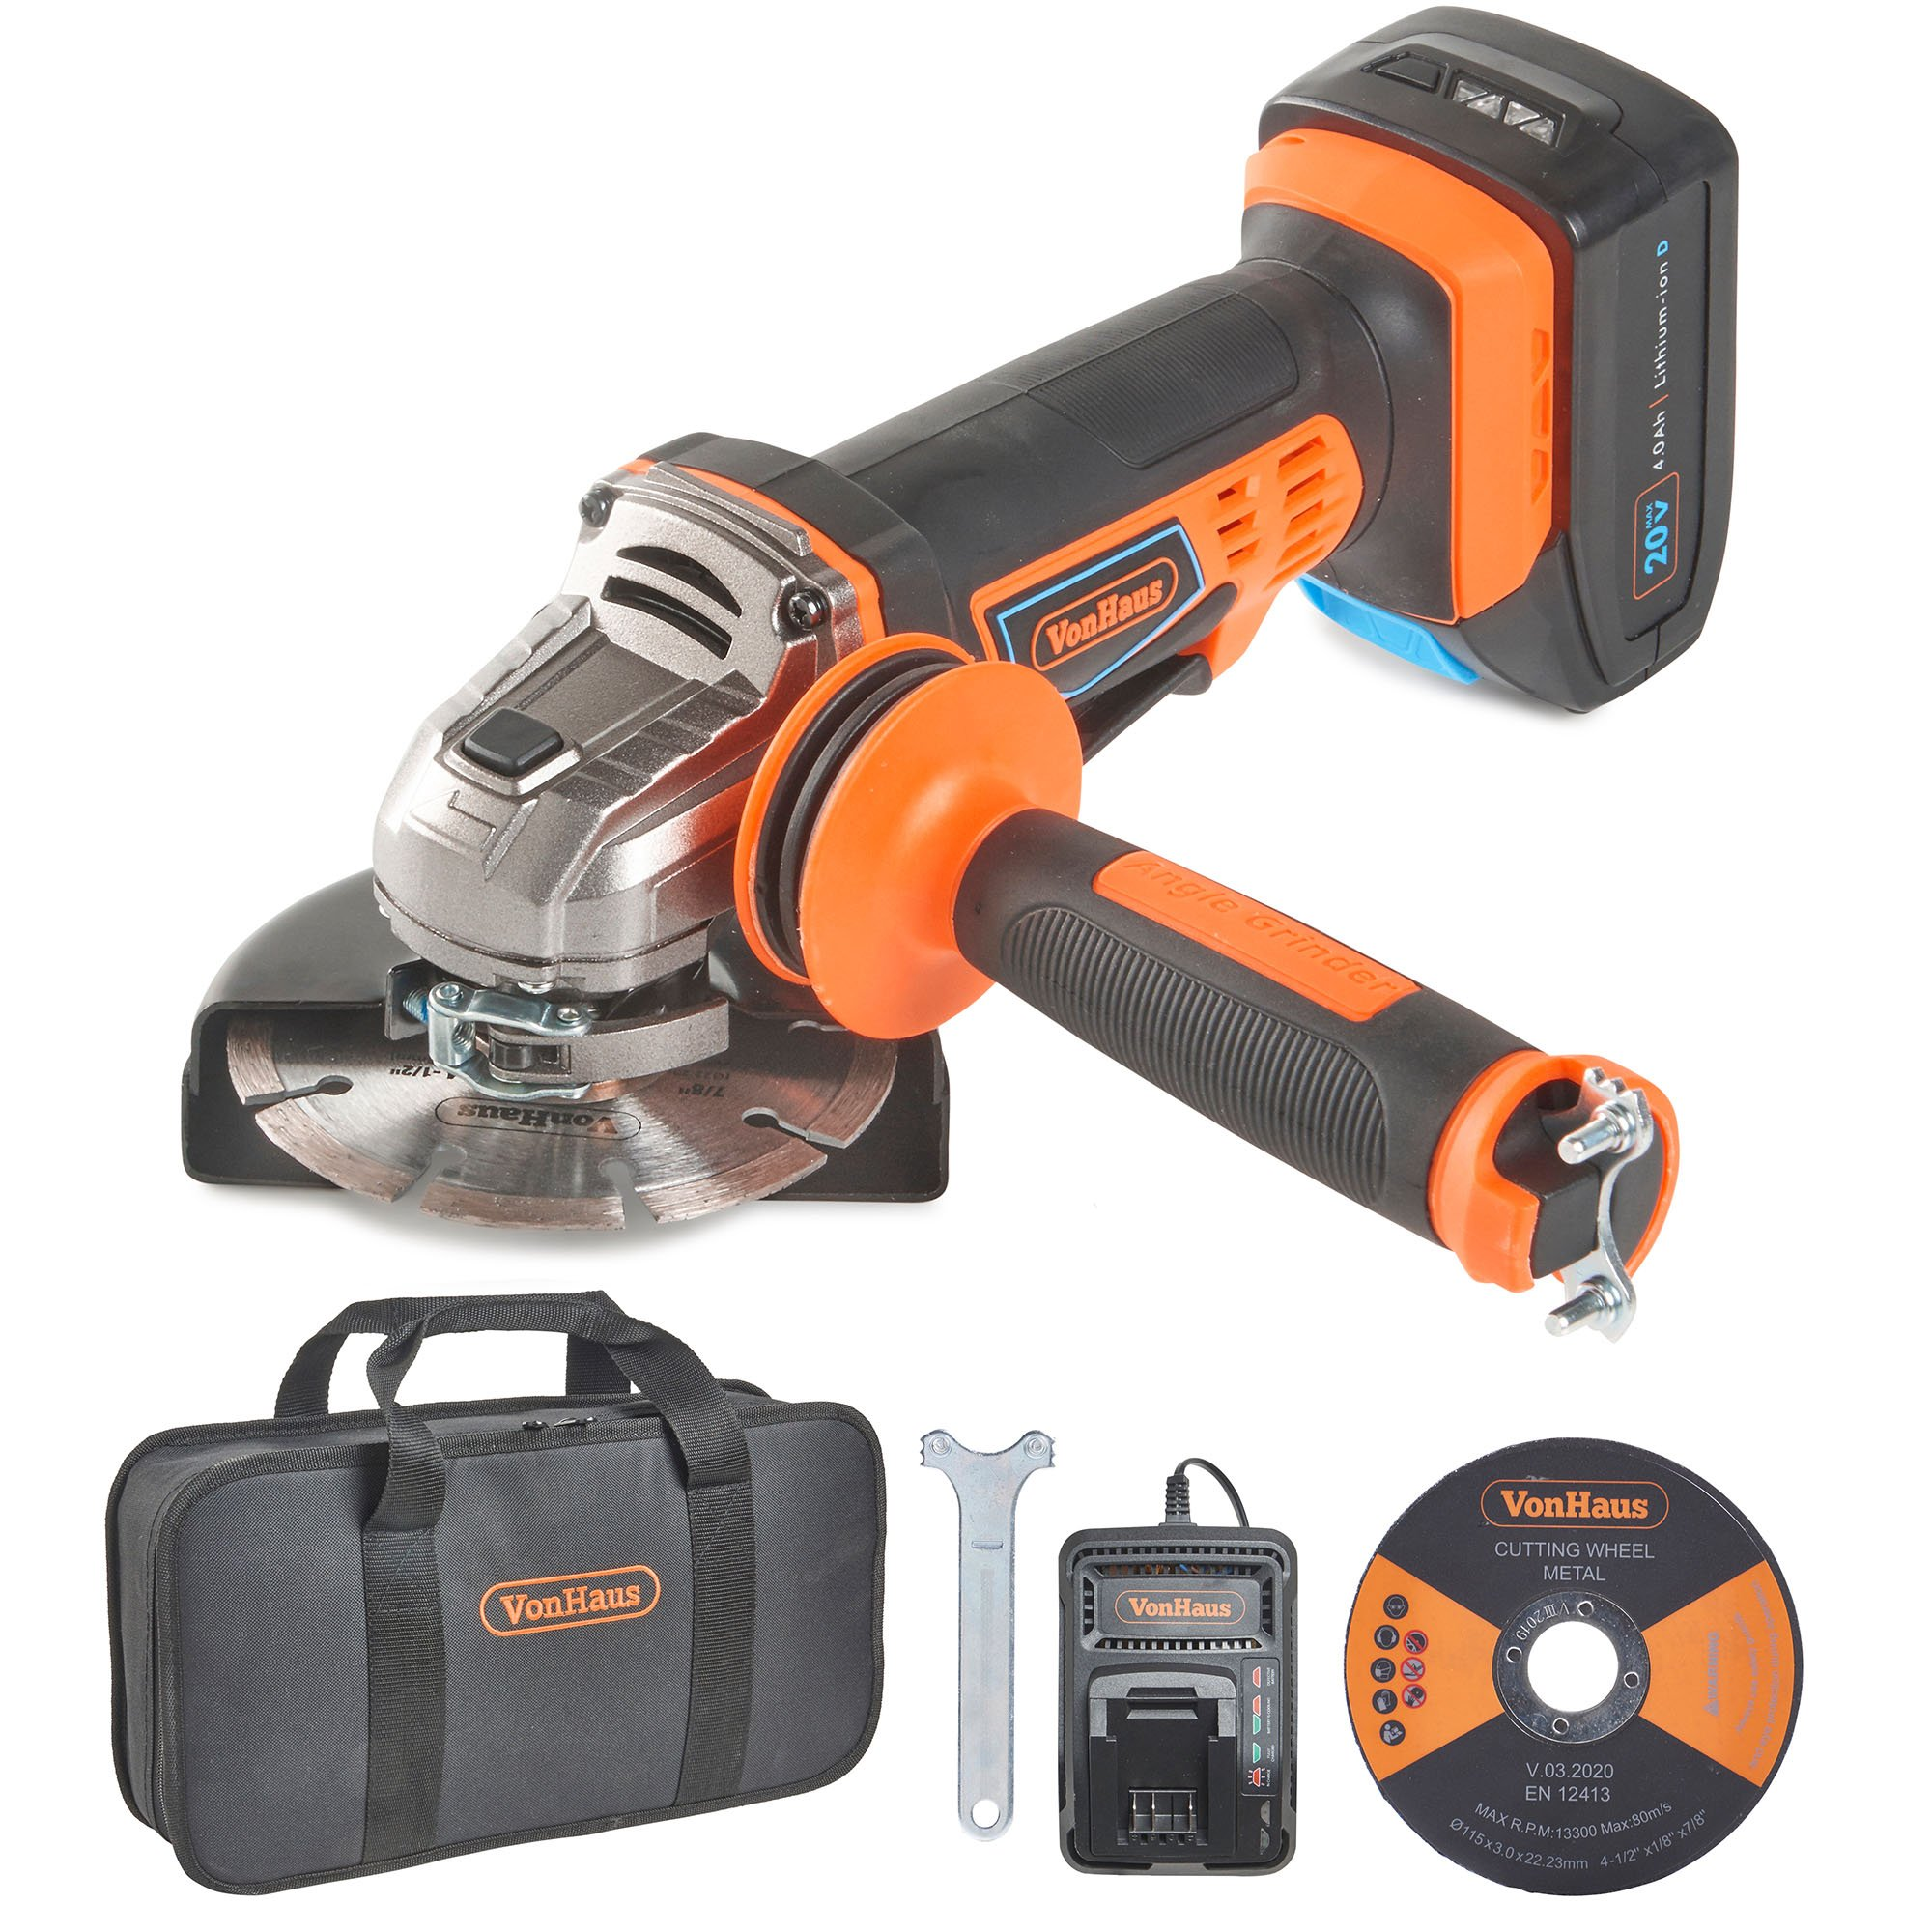 """VonHaus 20V MAX Cordless 4 1/2"""" Angle Grinder Set with 1x Cutting Disc, 1x Diamond Tipped Disc and Adjustable Auxiliary Handle - Includes 4.0Ah Lithium-ion Battery, Smart Charger and Power Tool Bag"""